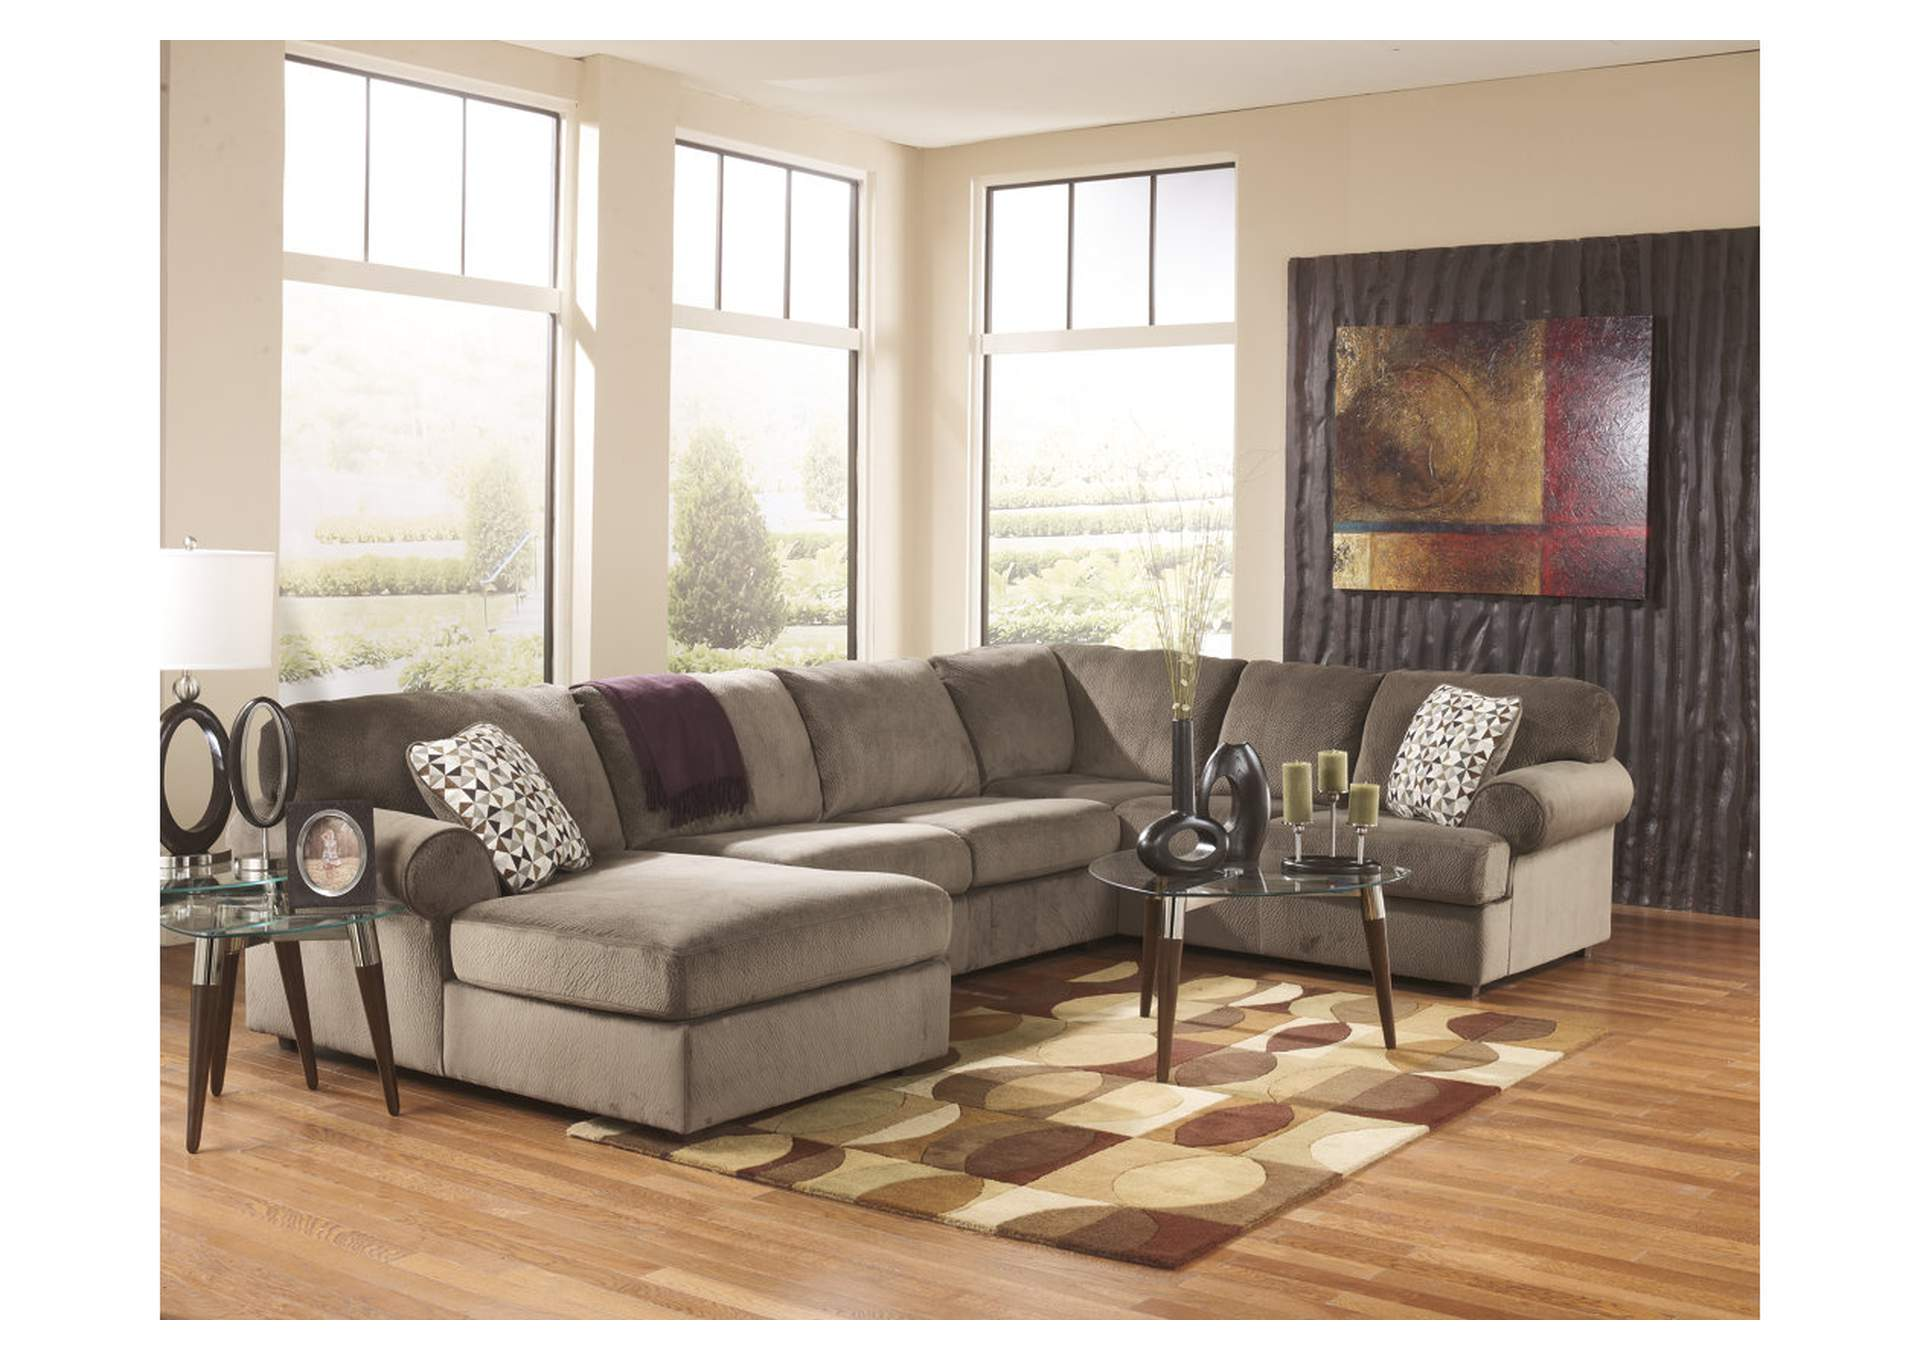 Jessa Place Dune Left Facing Chaise Sectional,ABF Signature Design by Ashley